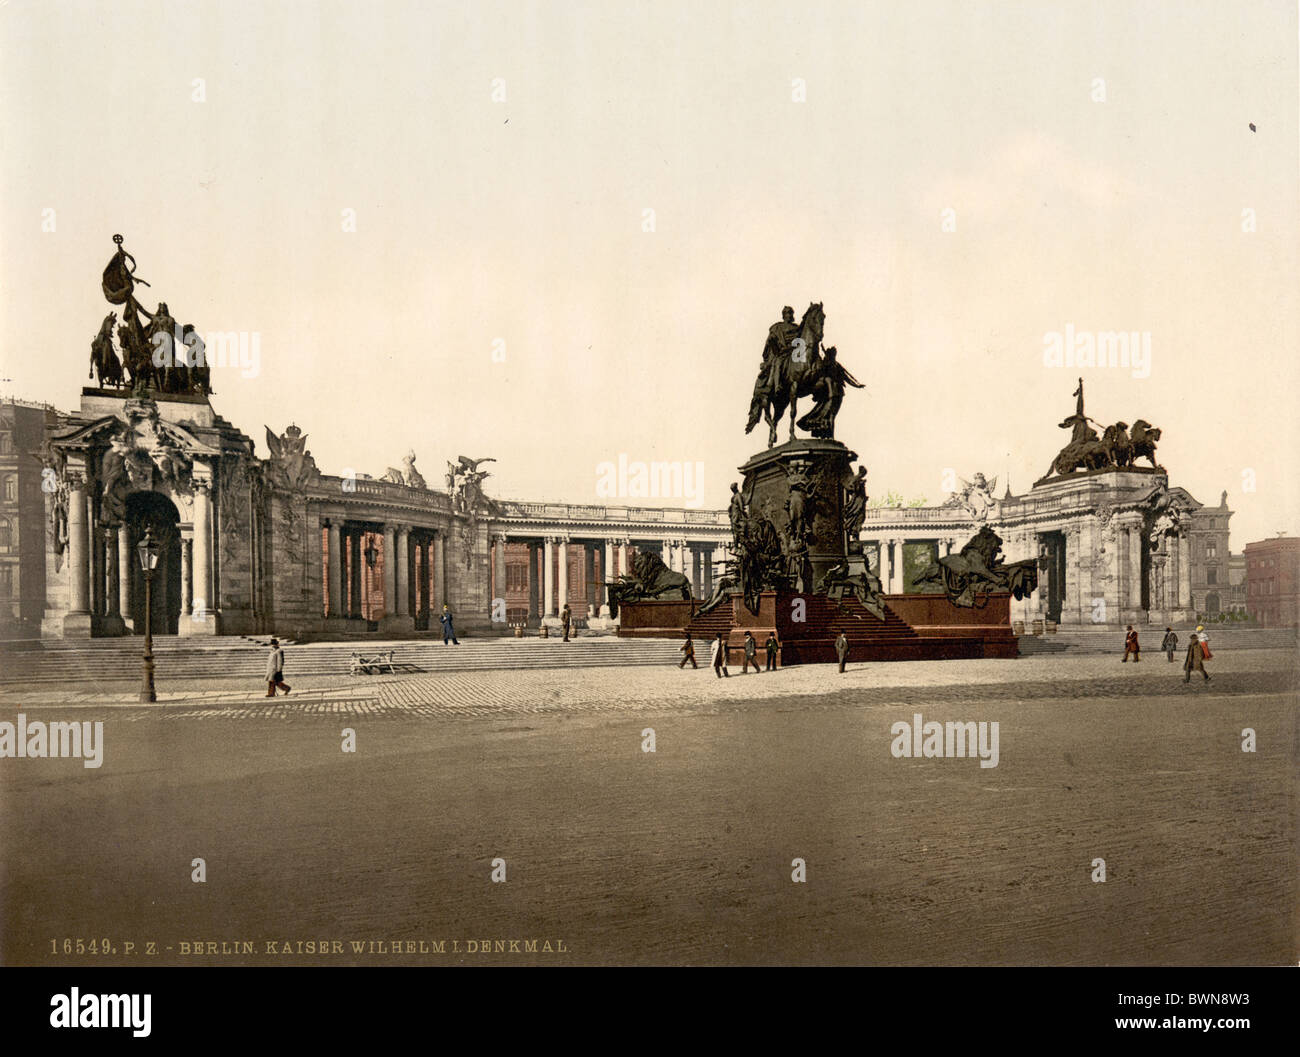 Berlin Emperor William I Monument Germany Europe Photochrom about 1900 German Empire history historical histo - Stock Image